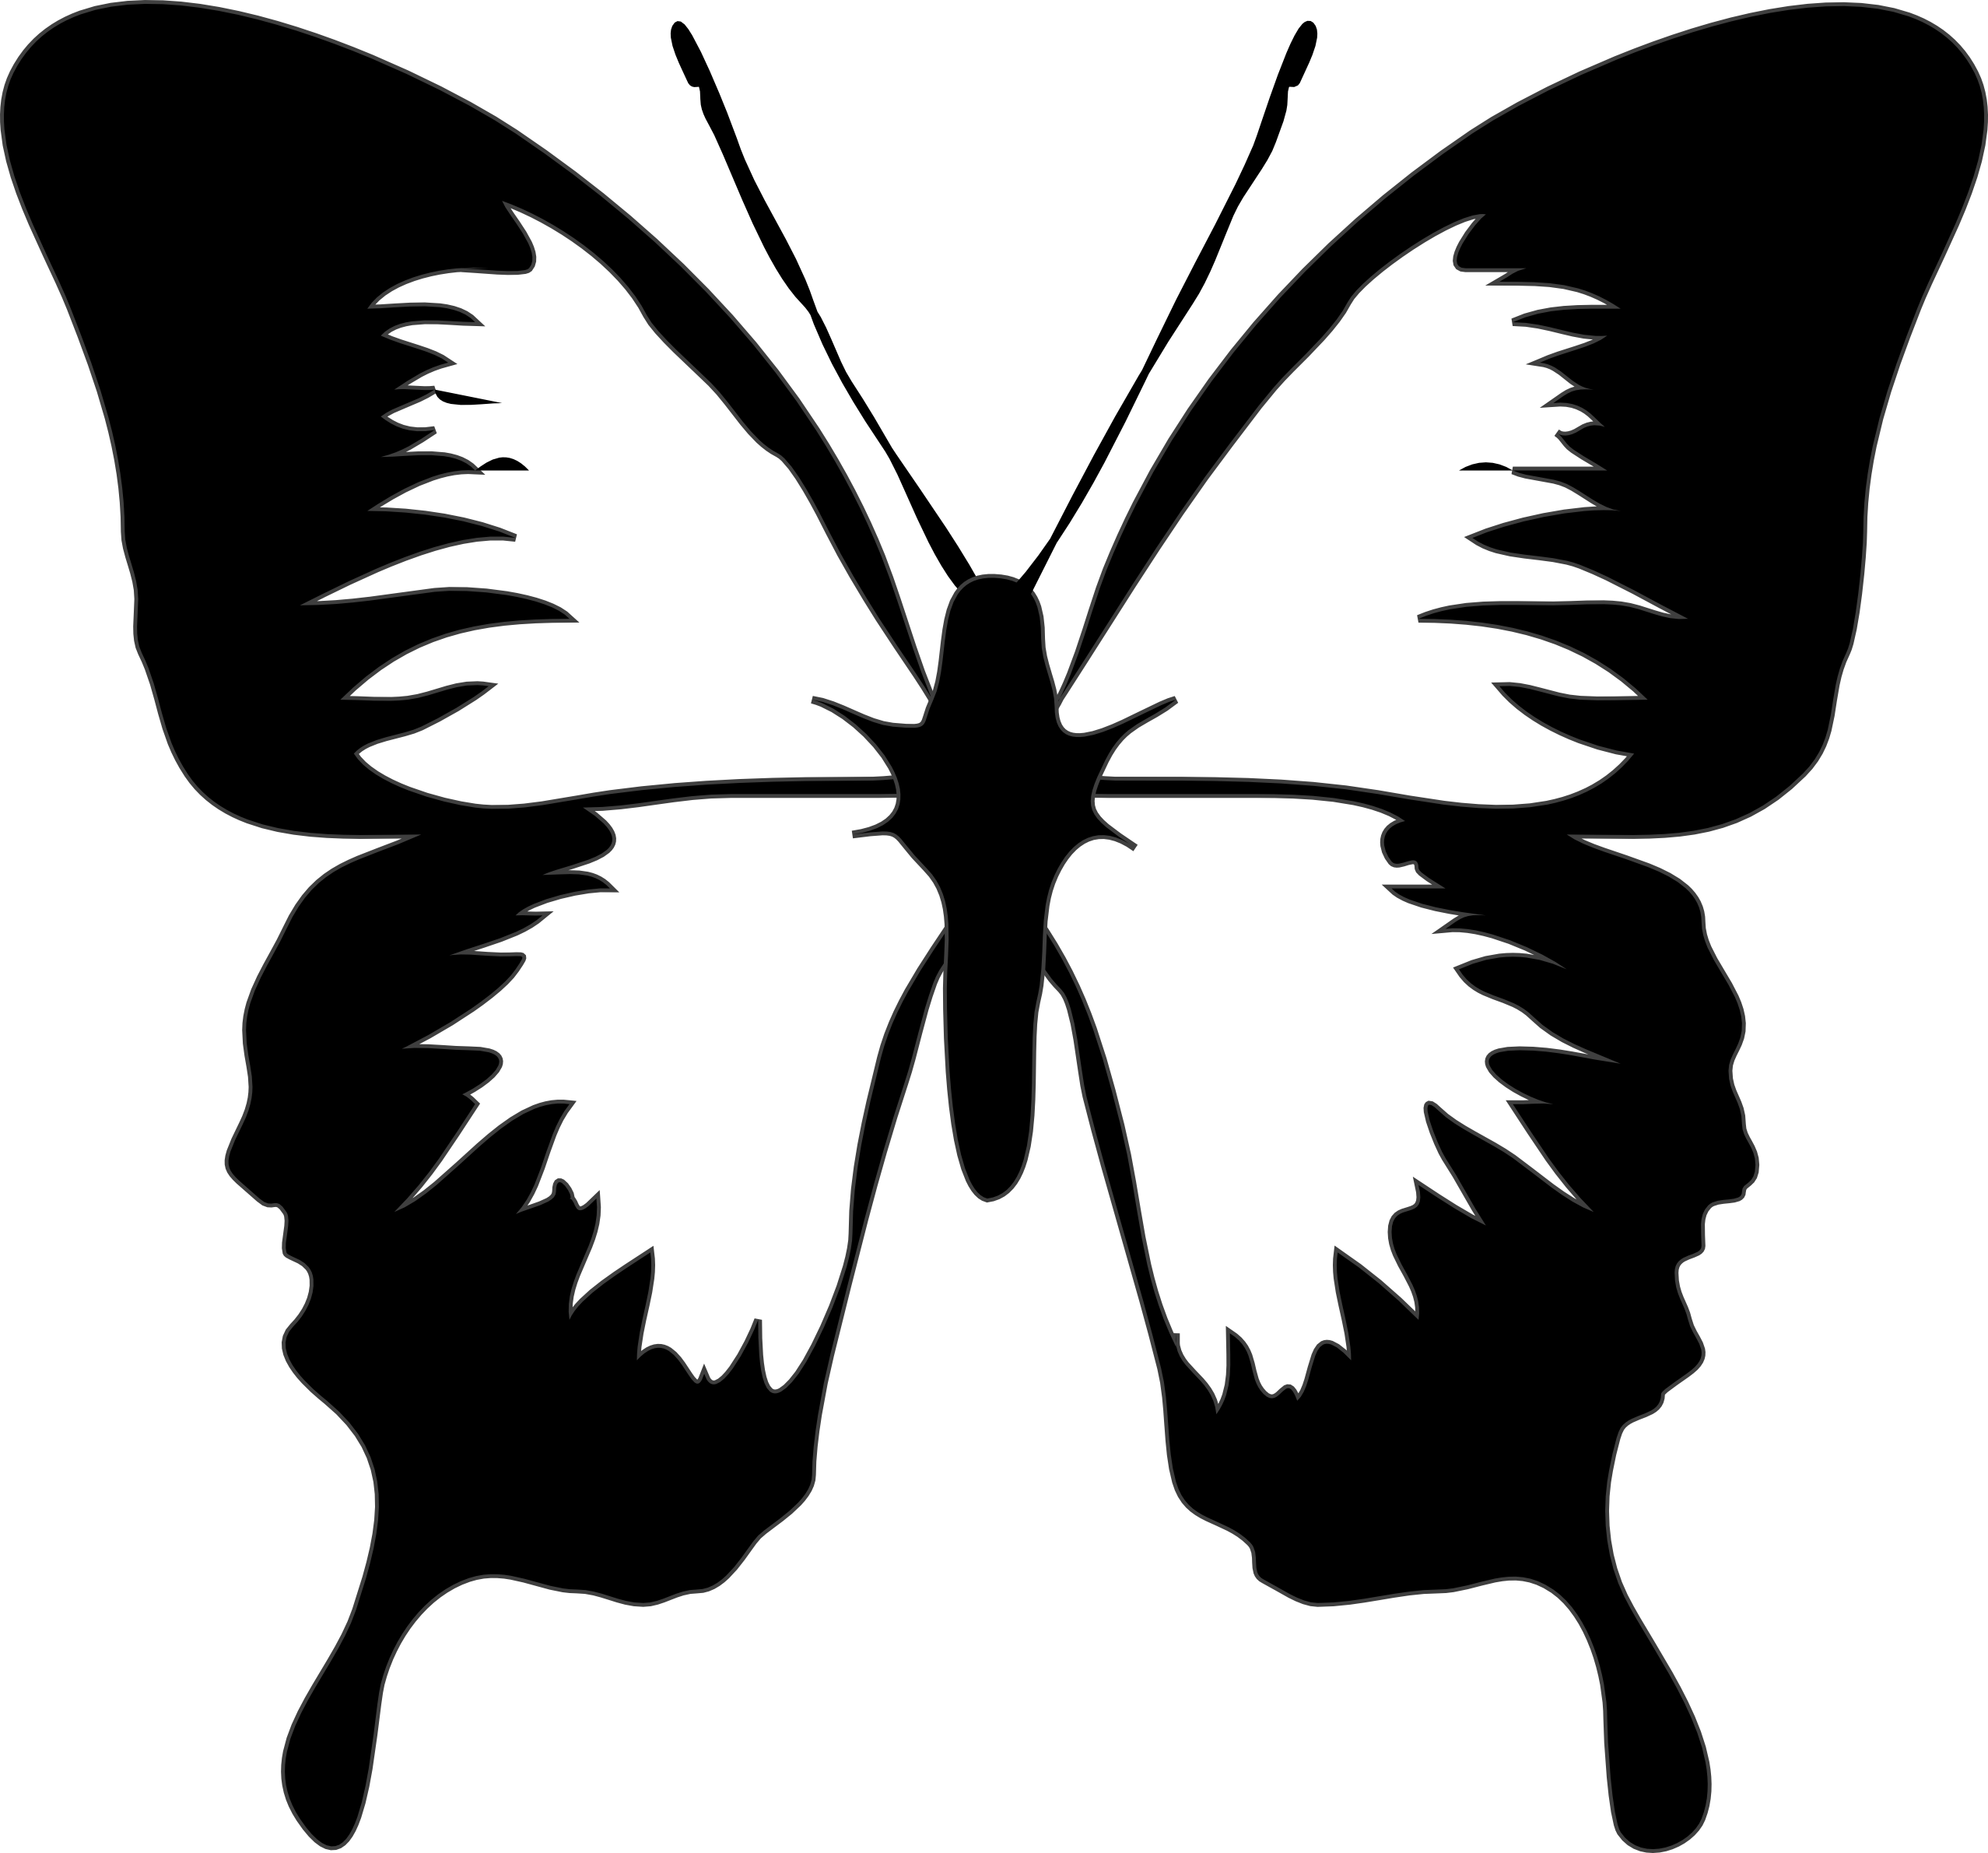 Butterfly clipart free black and white picture royalty free library Free Butterfly Images Black And White, Download Free Clip Art, Free ... picture royalty free library